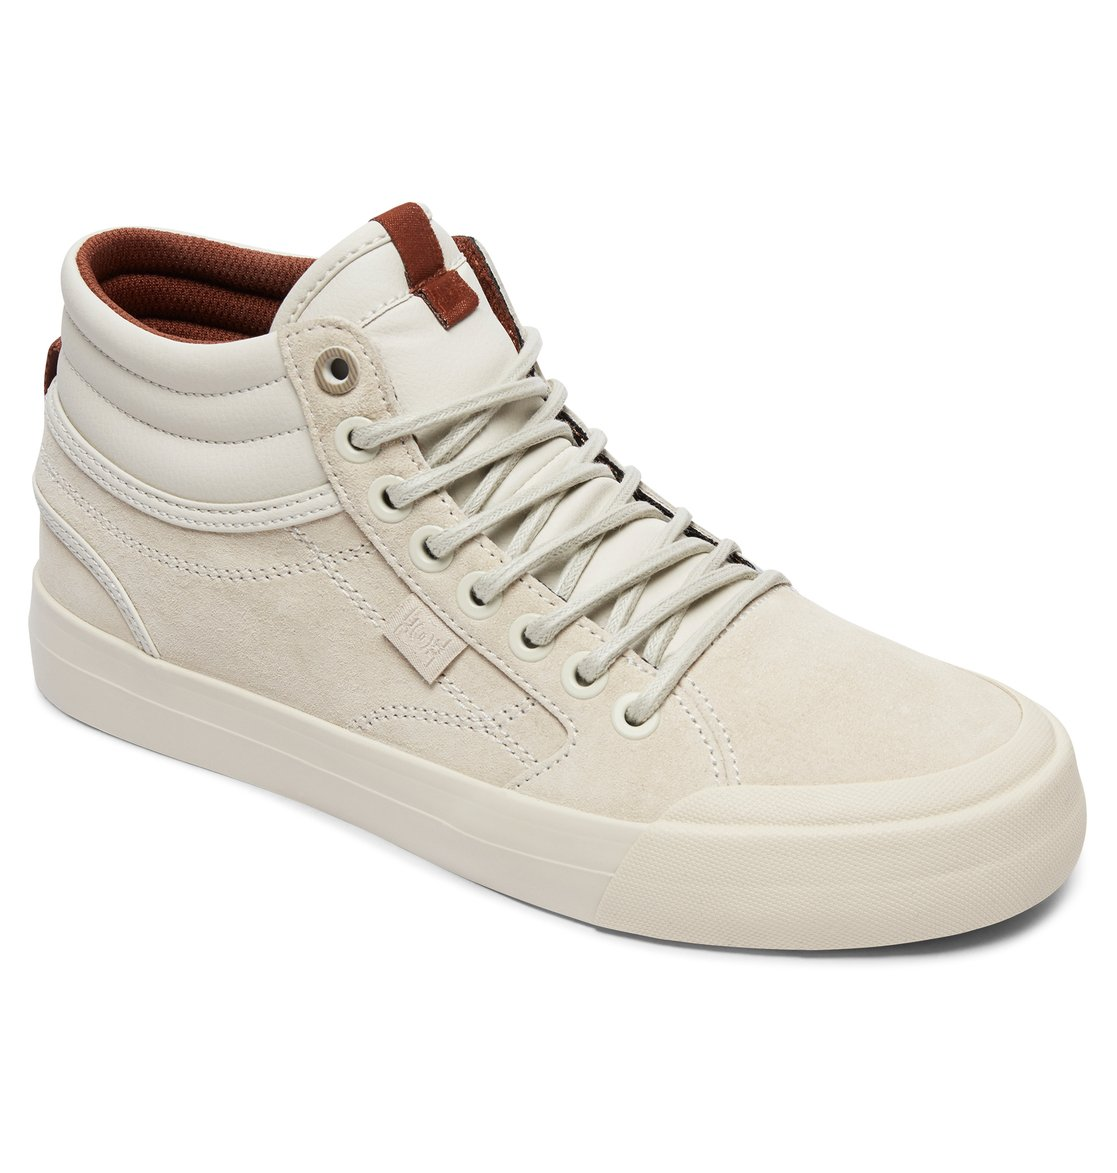 Women's Evan Hi Le Skate Shoe